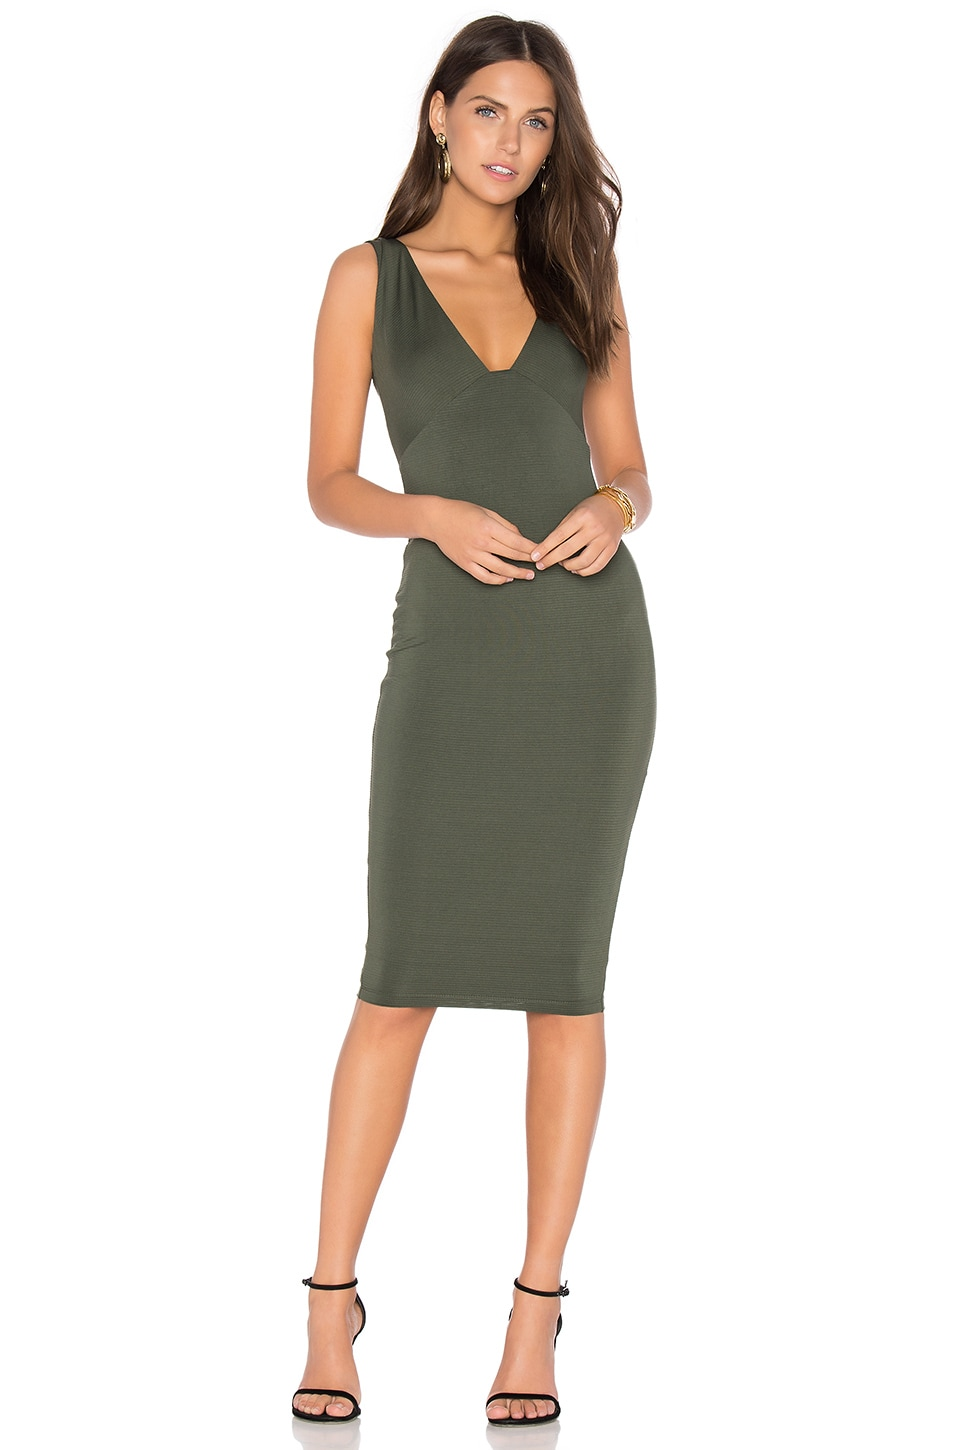 Nookie Muse Midi Dress in Olive